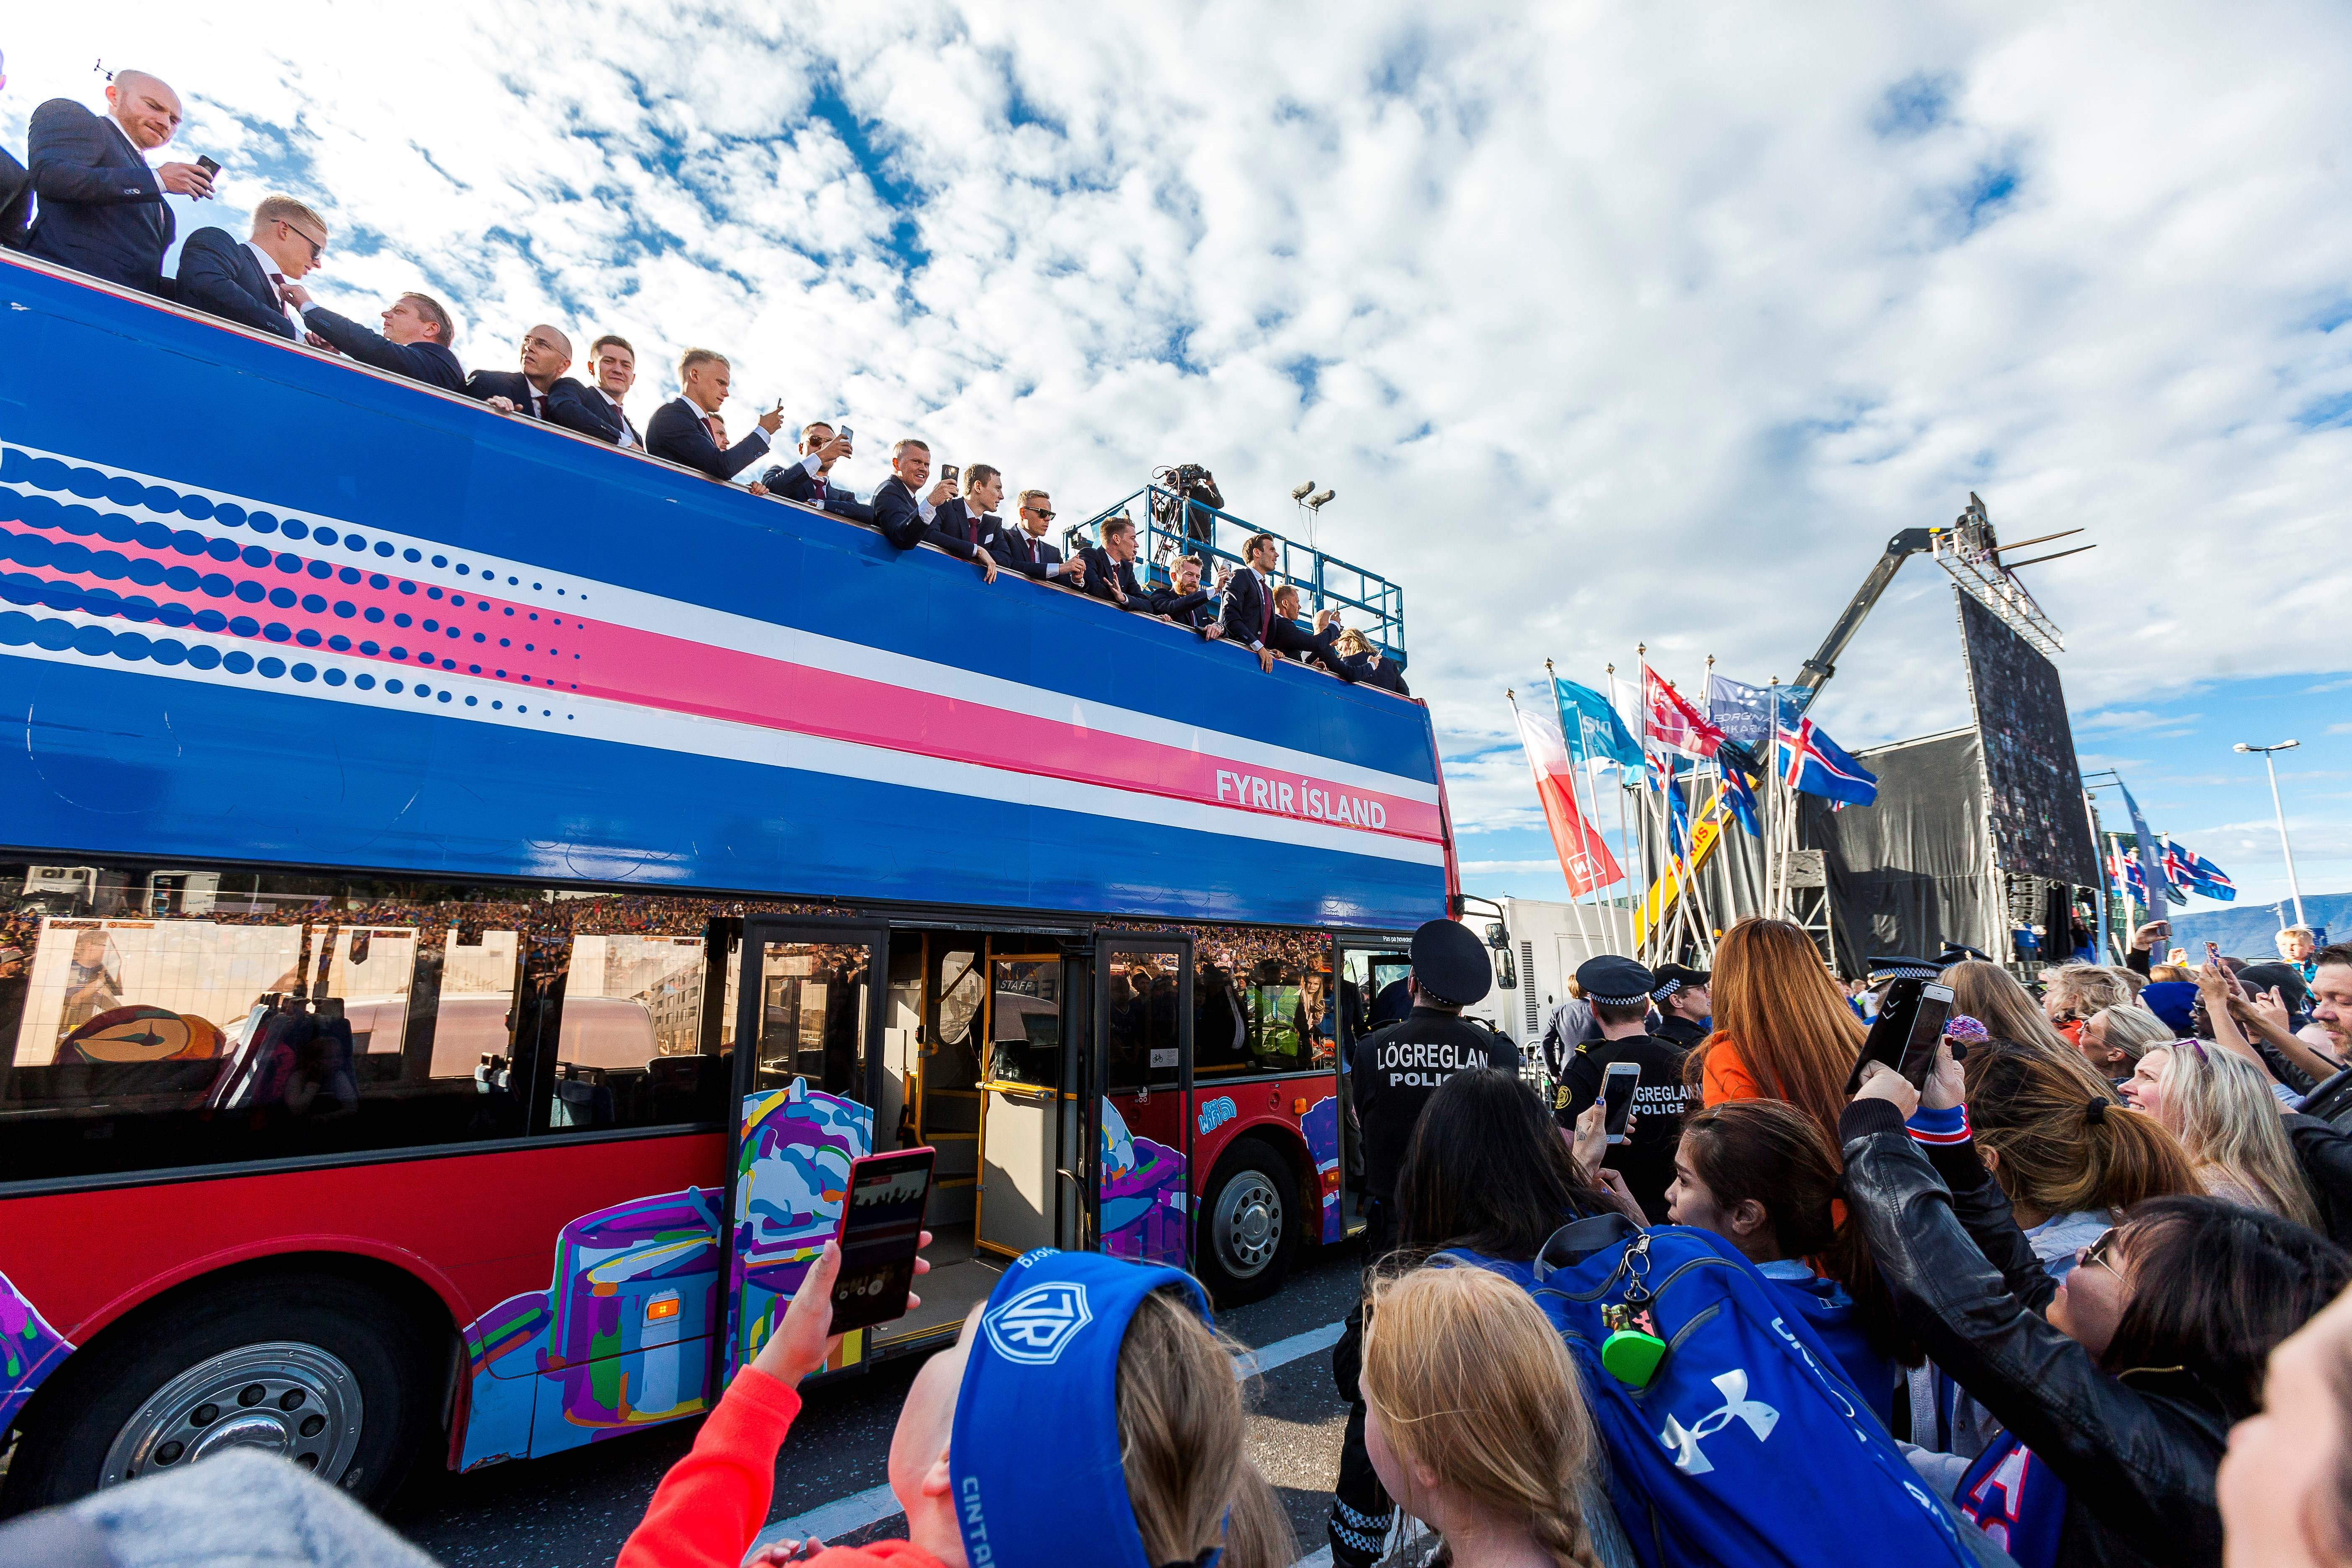 The Iceland national soccer team arrives in Reykjavik on July 4, 2016 on a bus after they lost against France during the the Euro 2016 quarterfinal the day before.